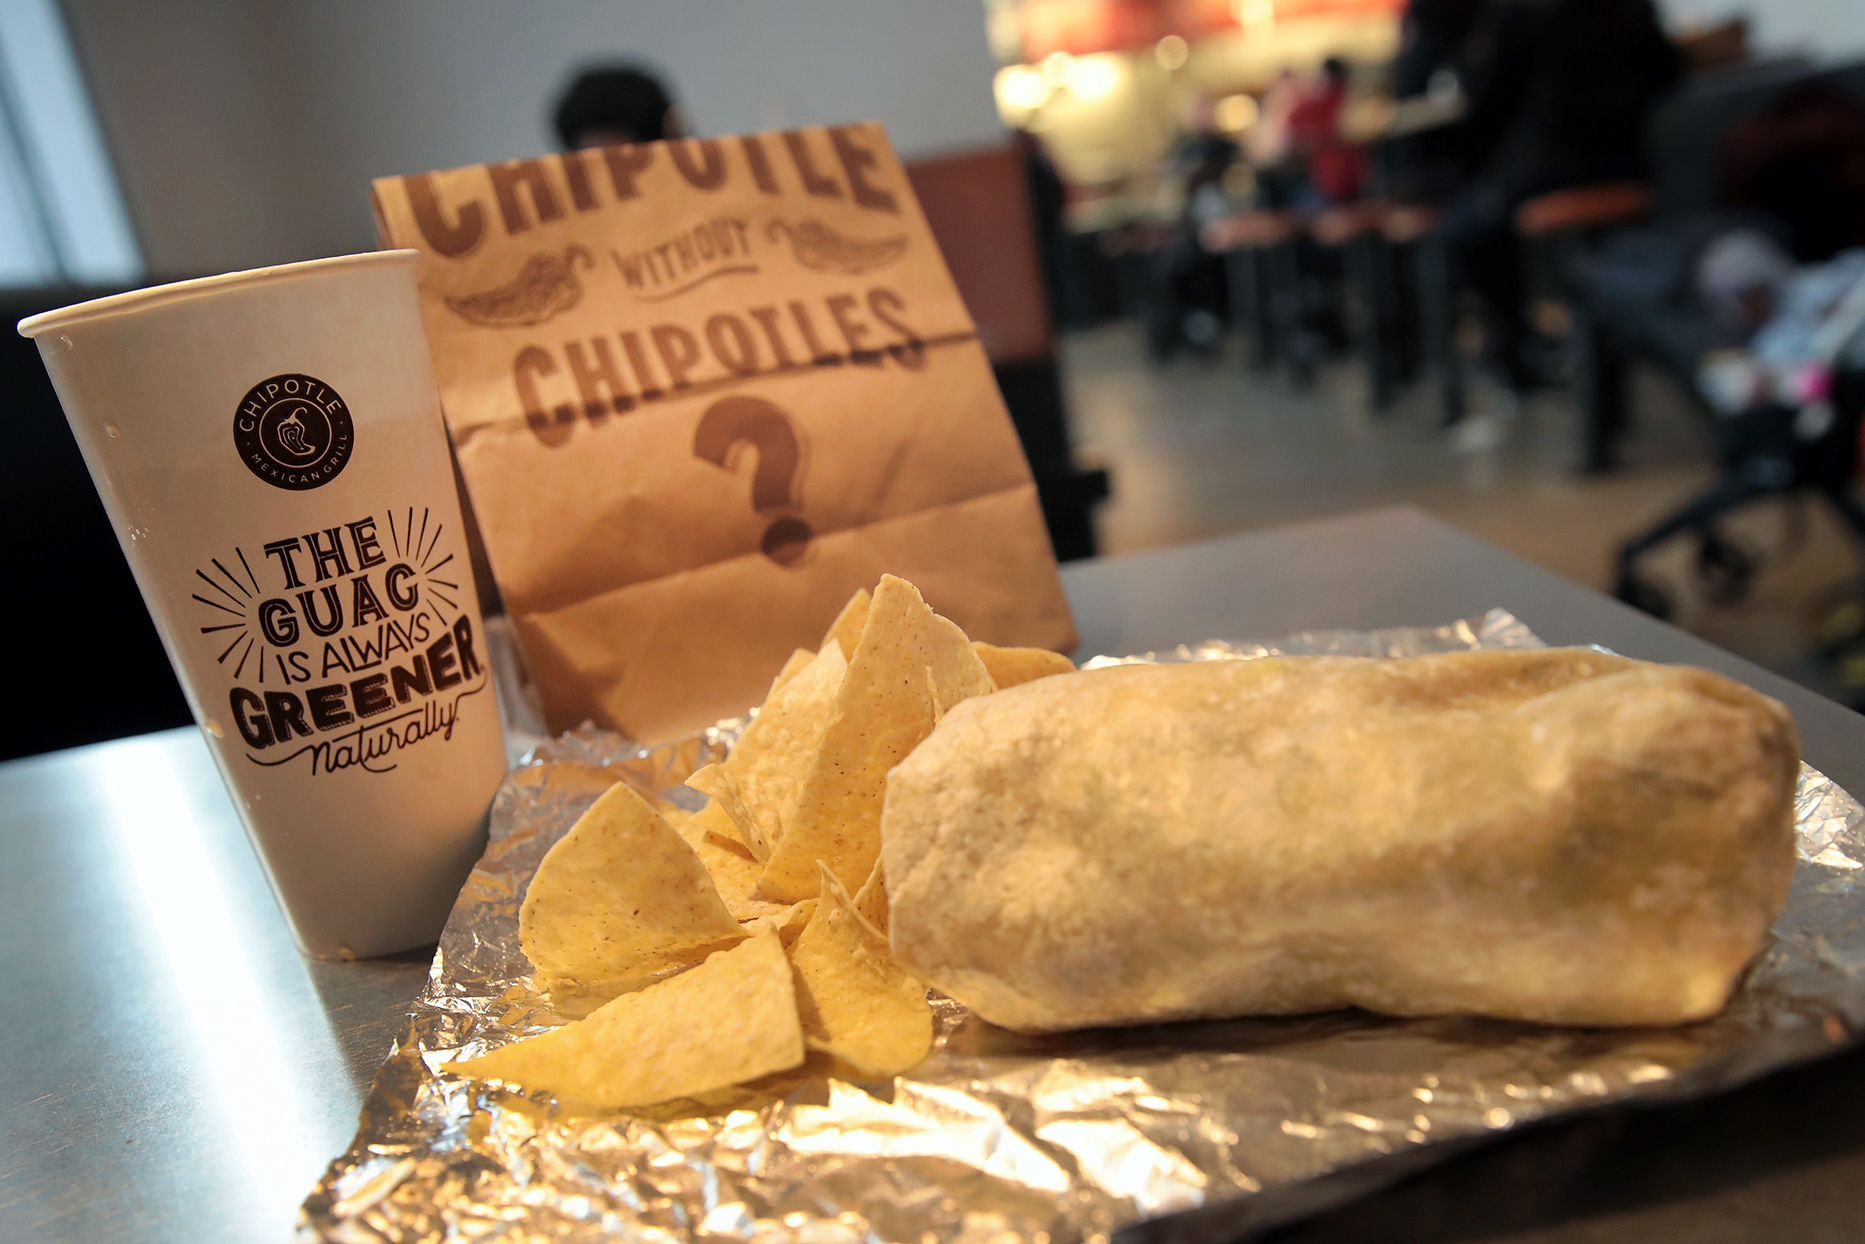 Chipotle Burrito Chips and Drink